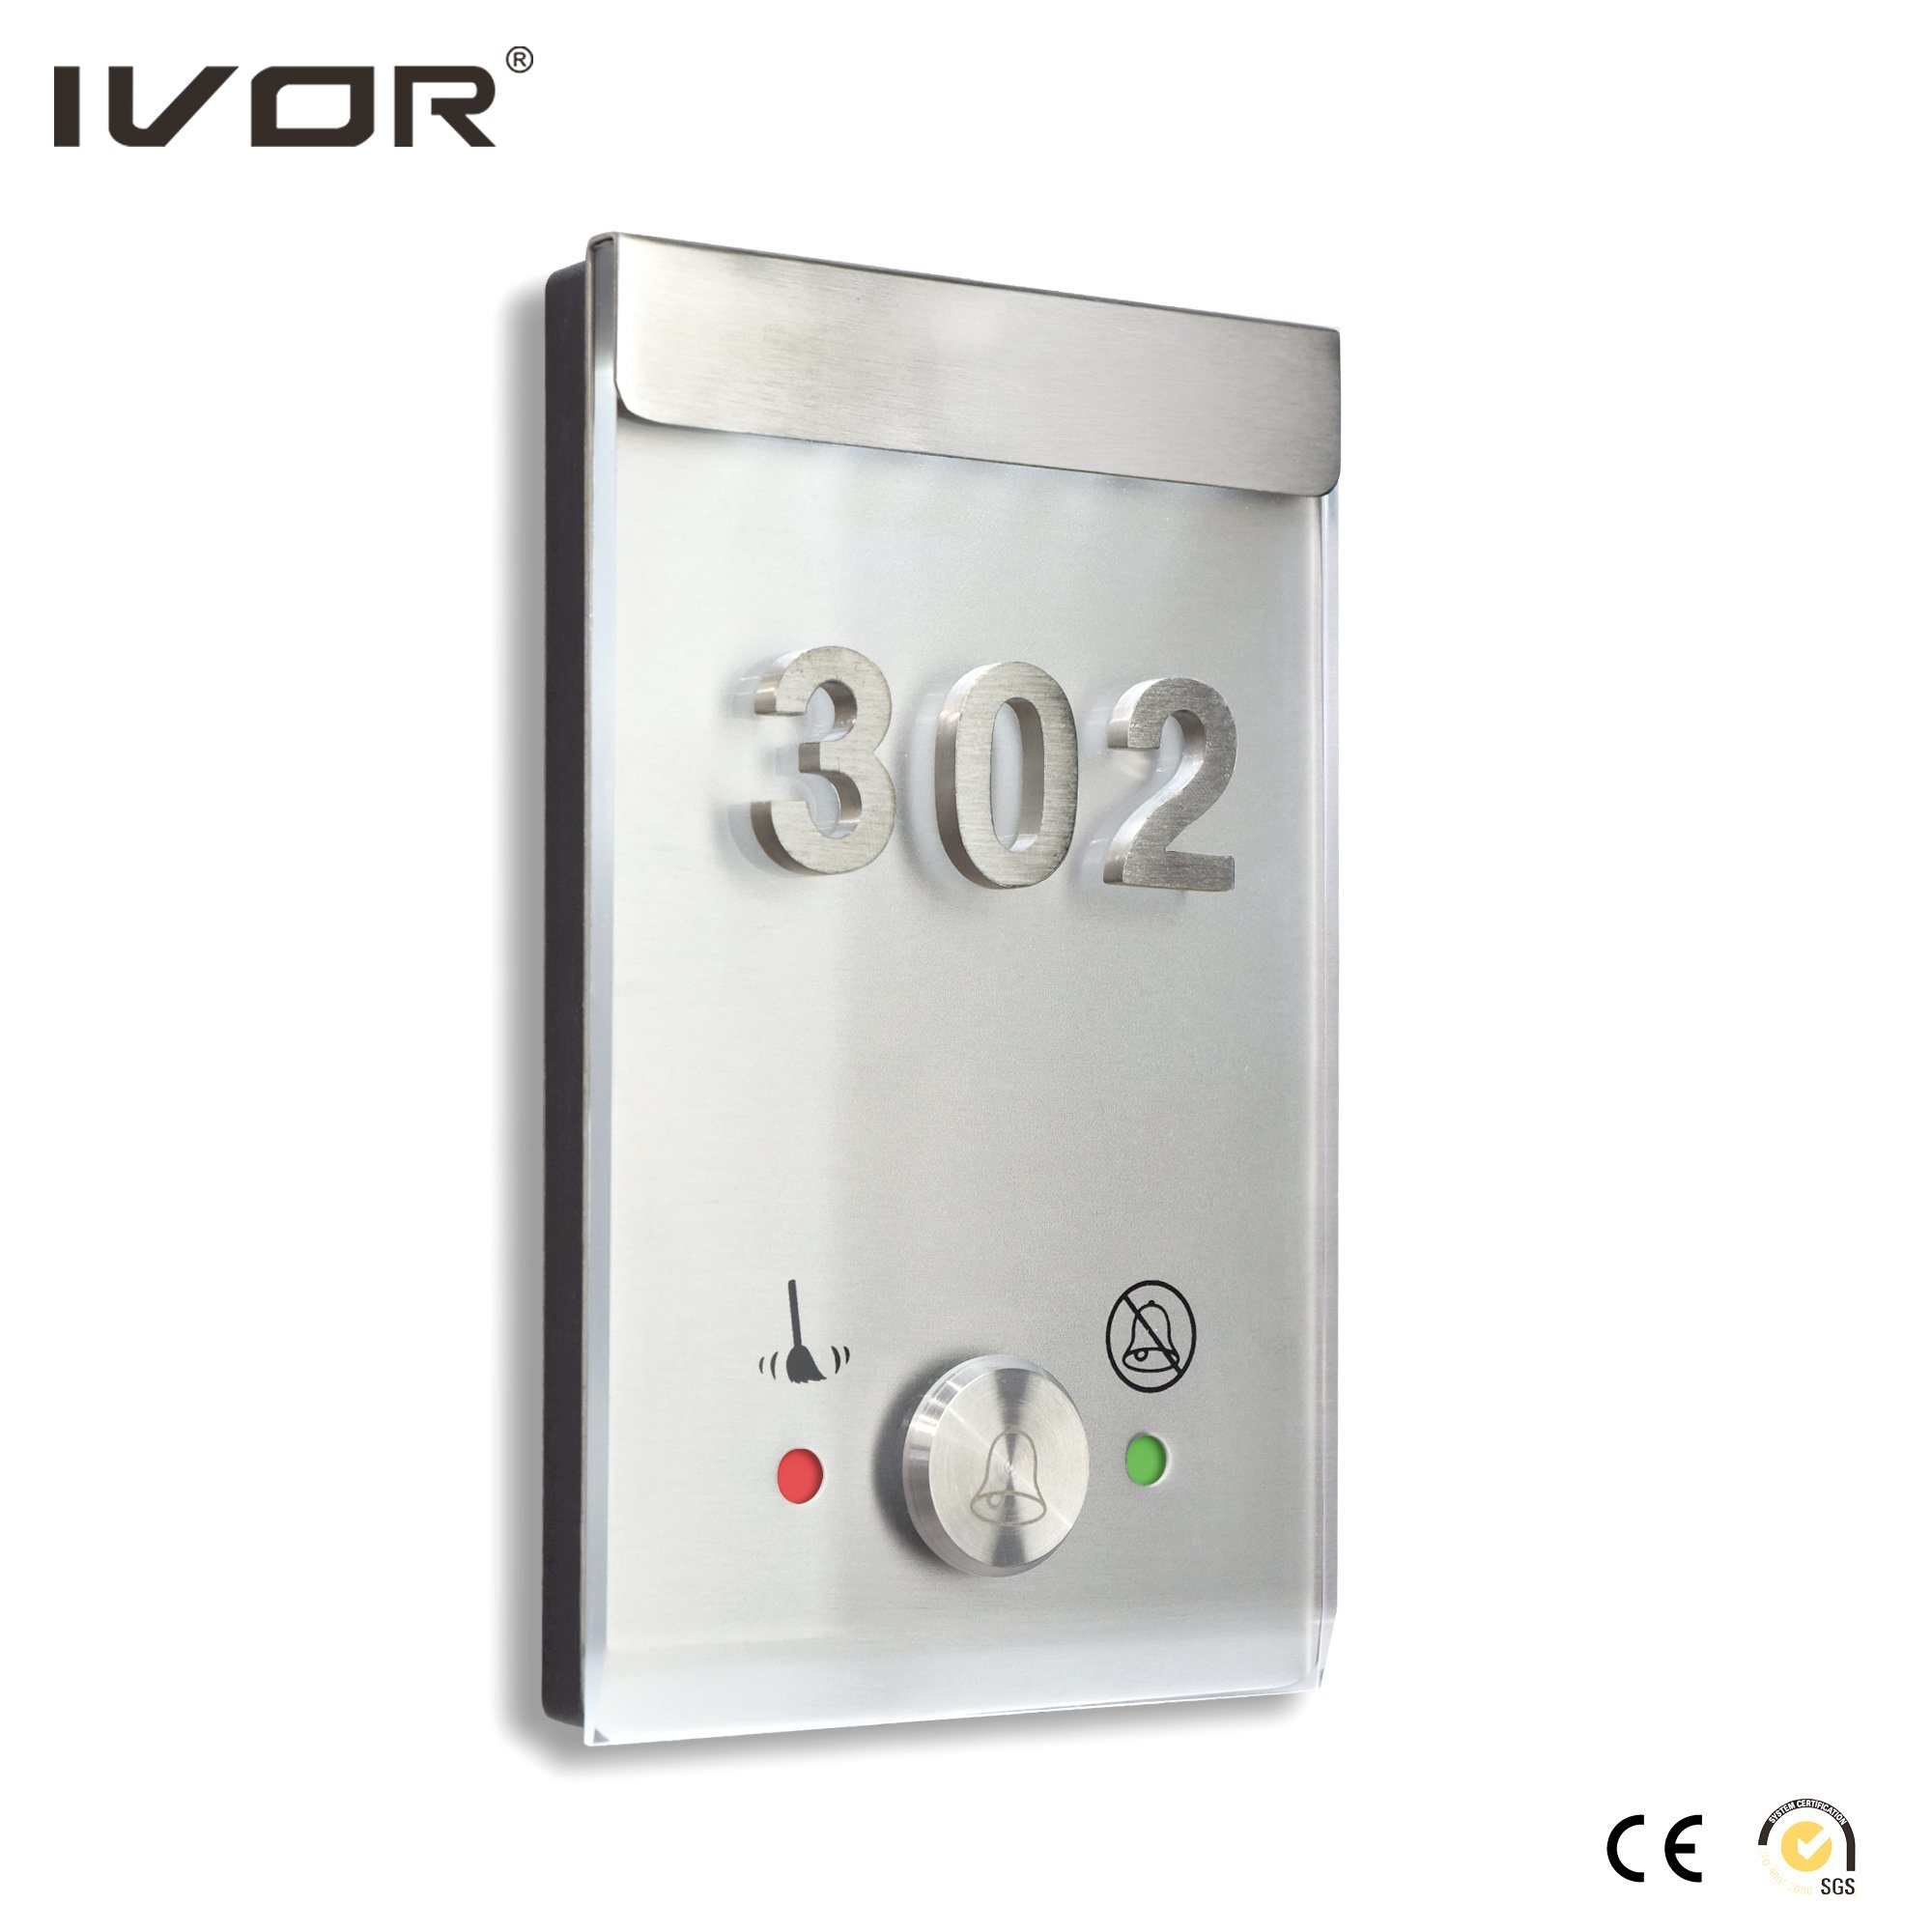 Hotel Doorbell System Outdoor Panel (IV-dB-A2)